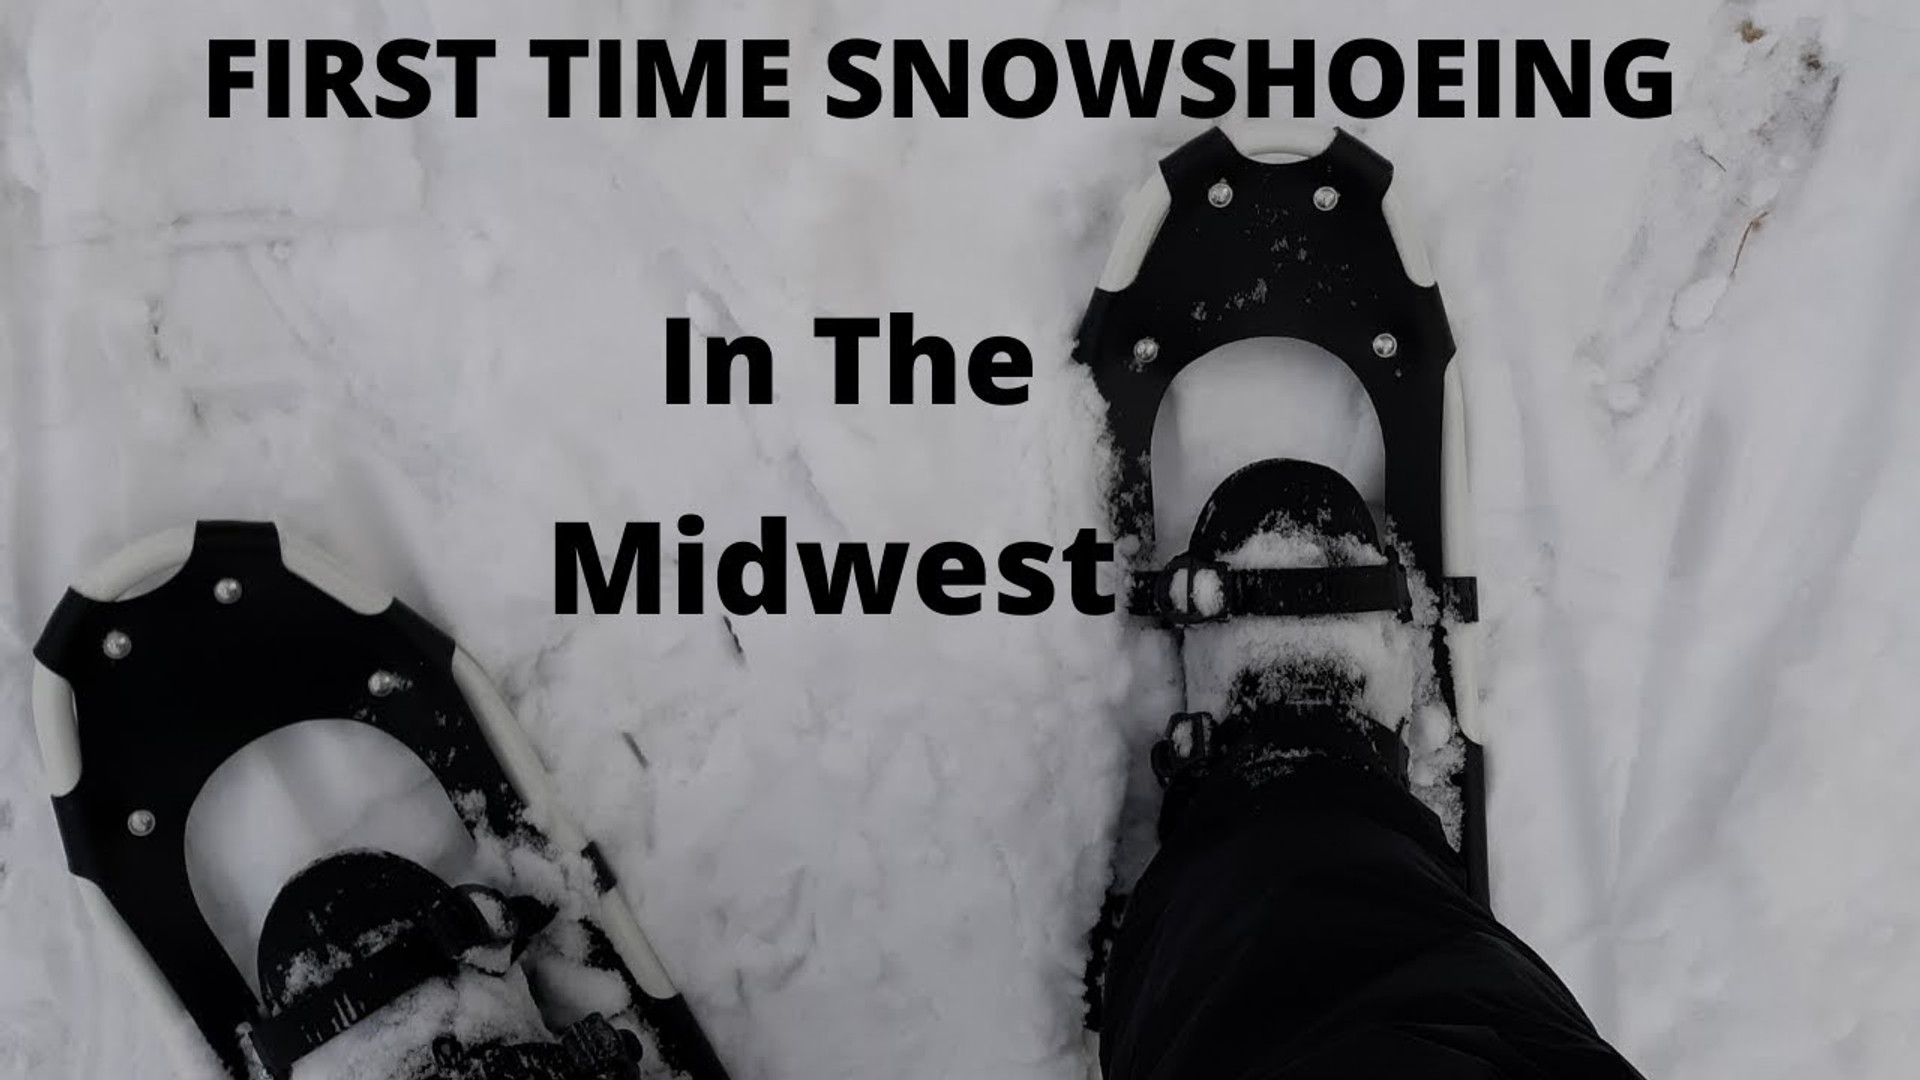 Snowshoeing the Midwest